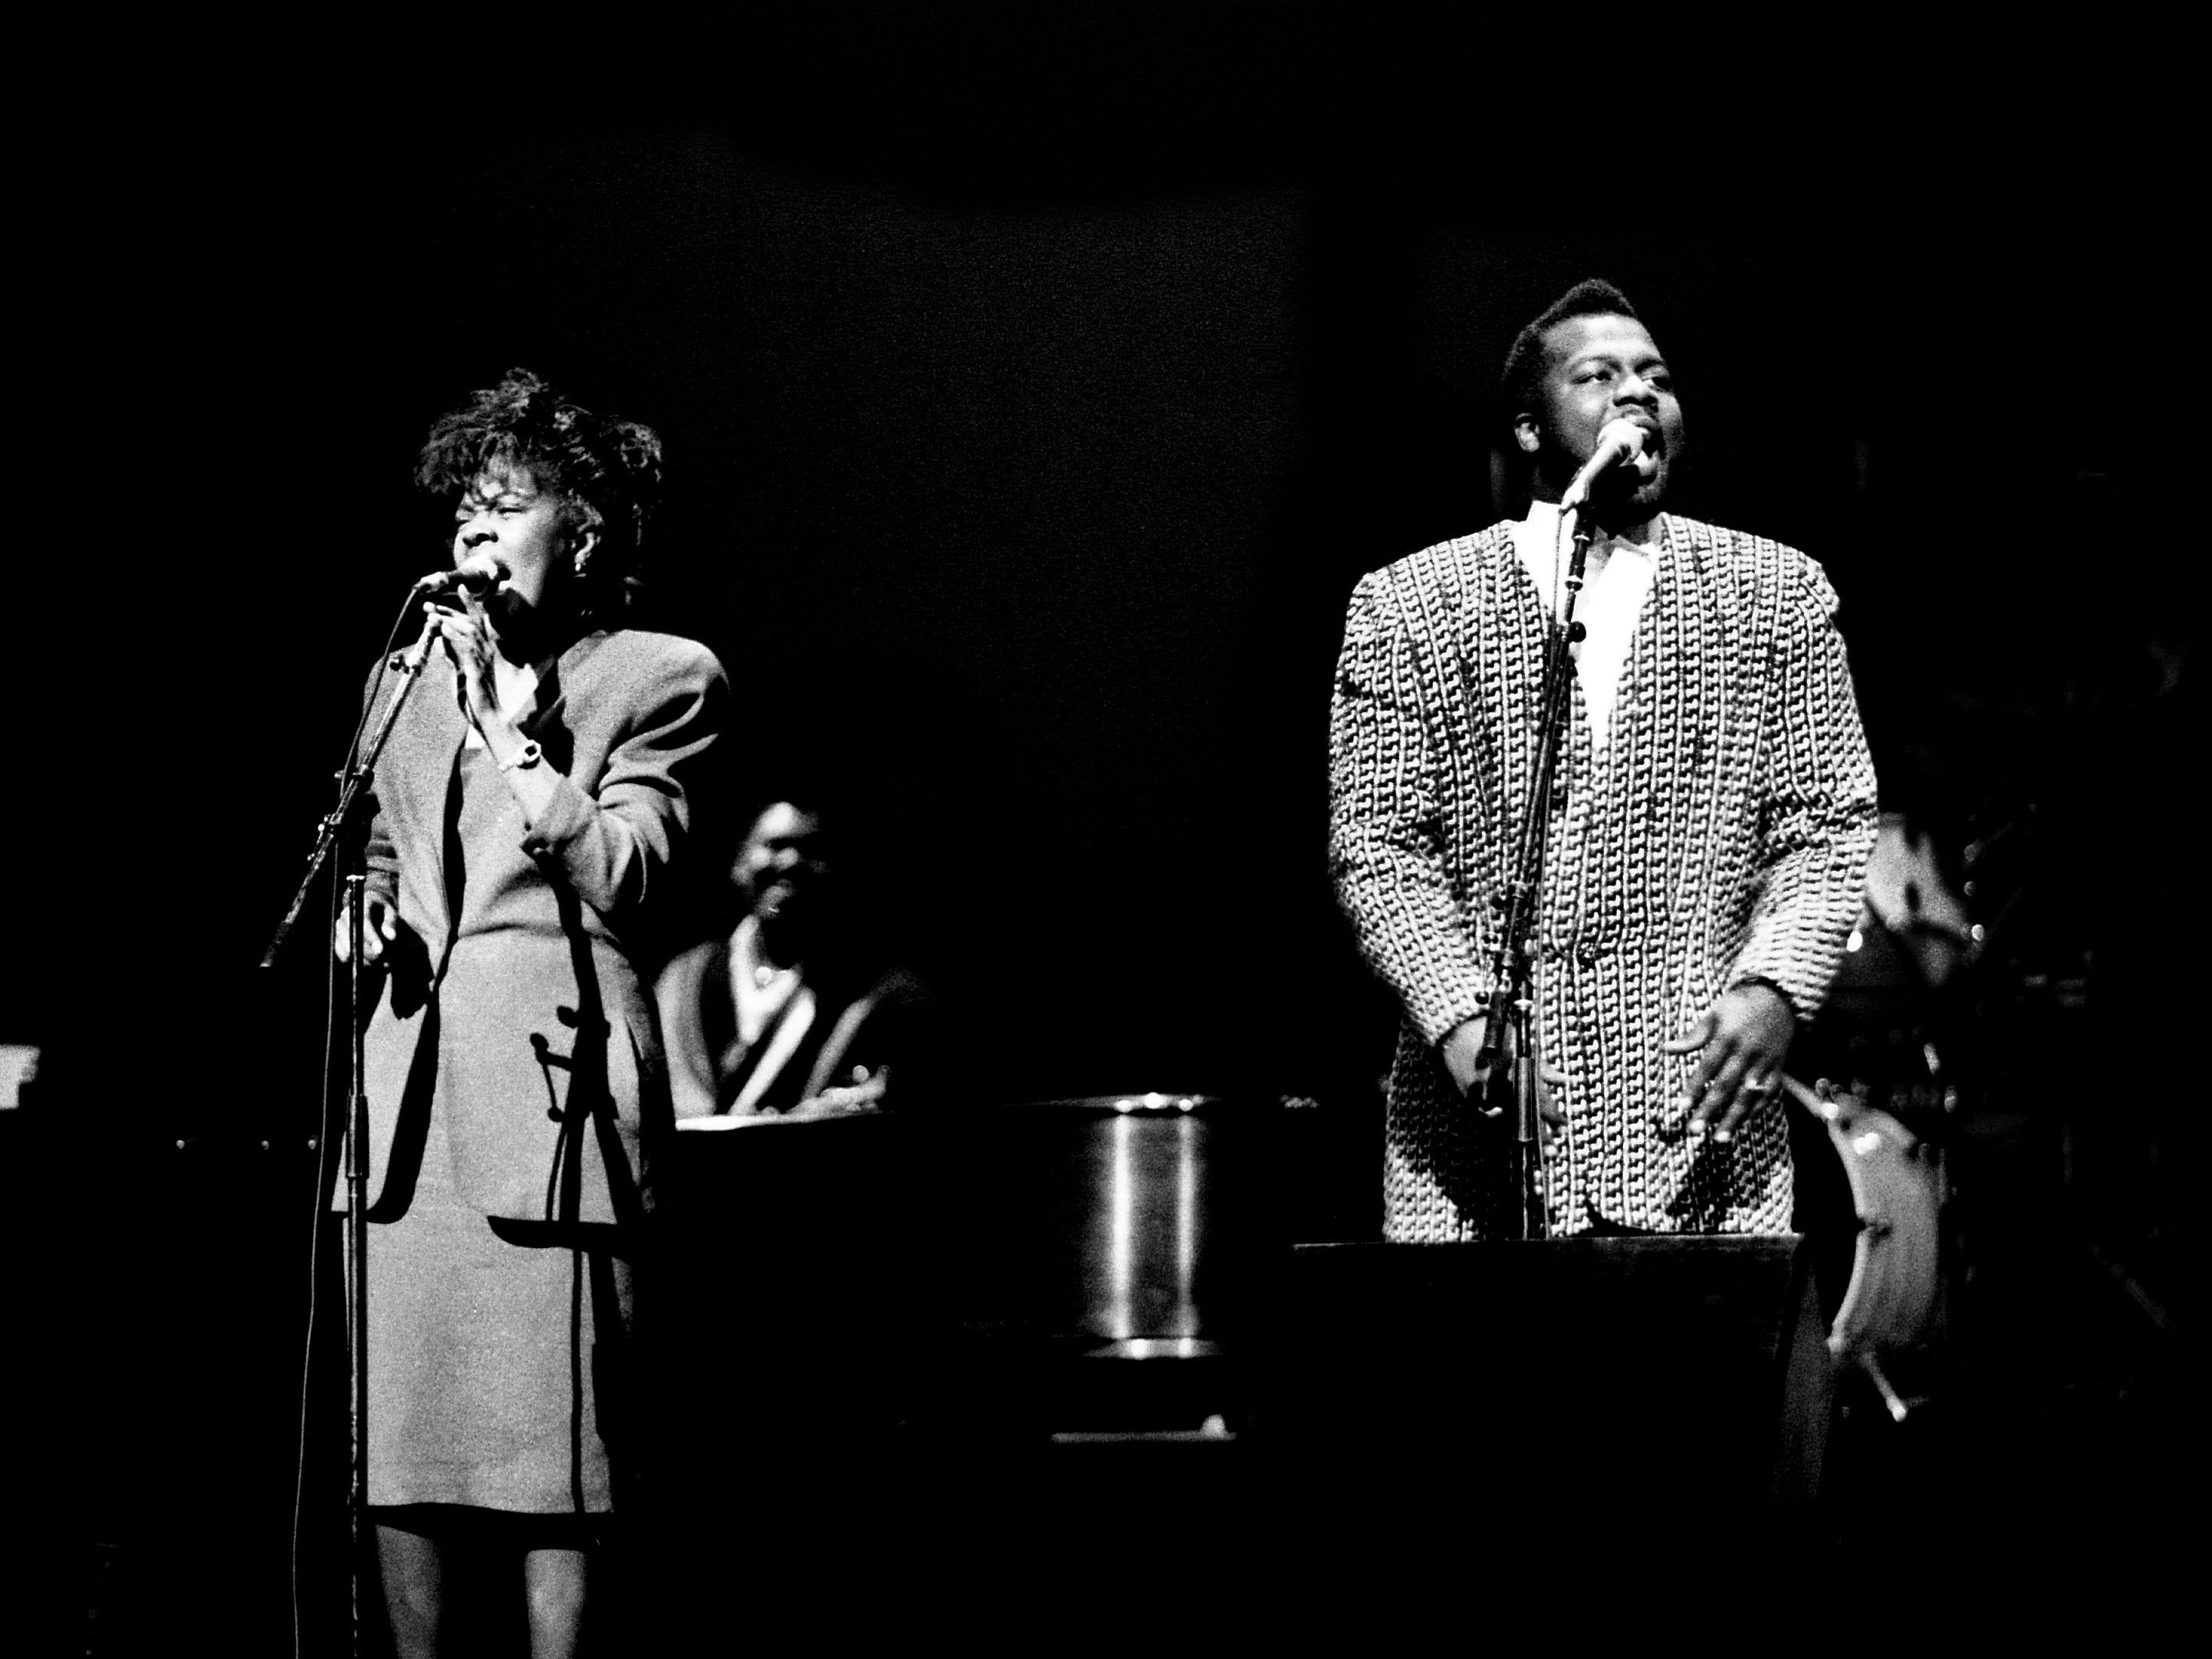 """CeCe and BeBe Winans perform """"Heaven,"""" the title tune from their new LP, during a sold-out concert at the Tennessee Performing Arts Center on March 19, 1989. The show was the first big benefit for the Association for Retarded Citizens."""